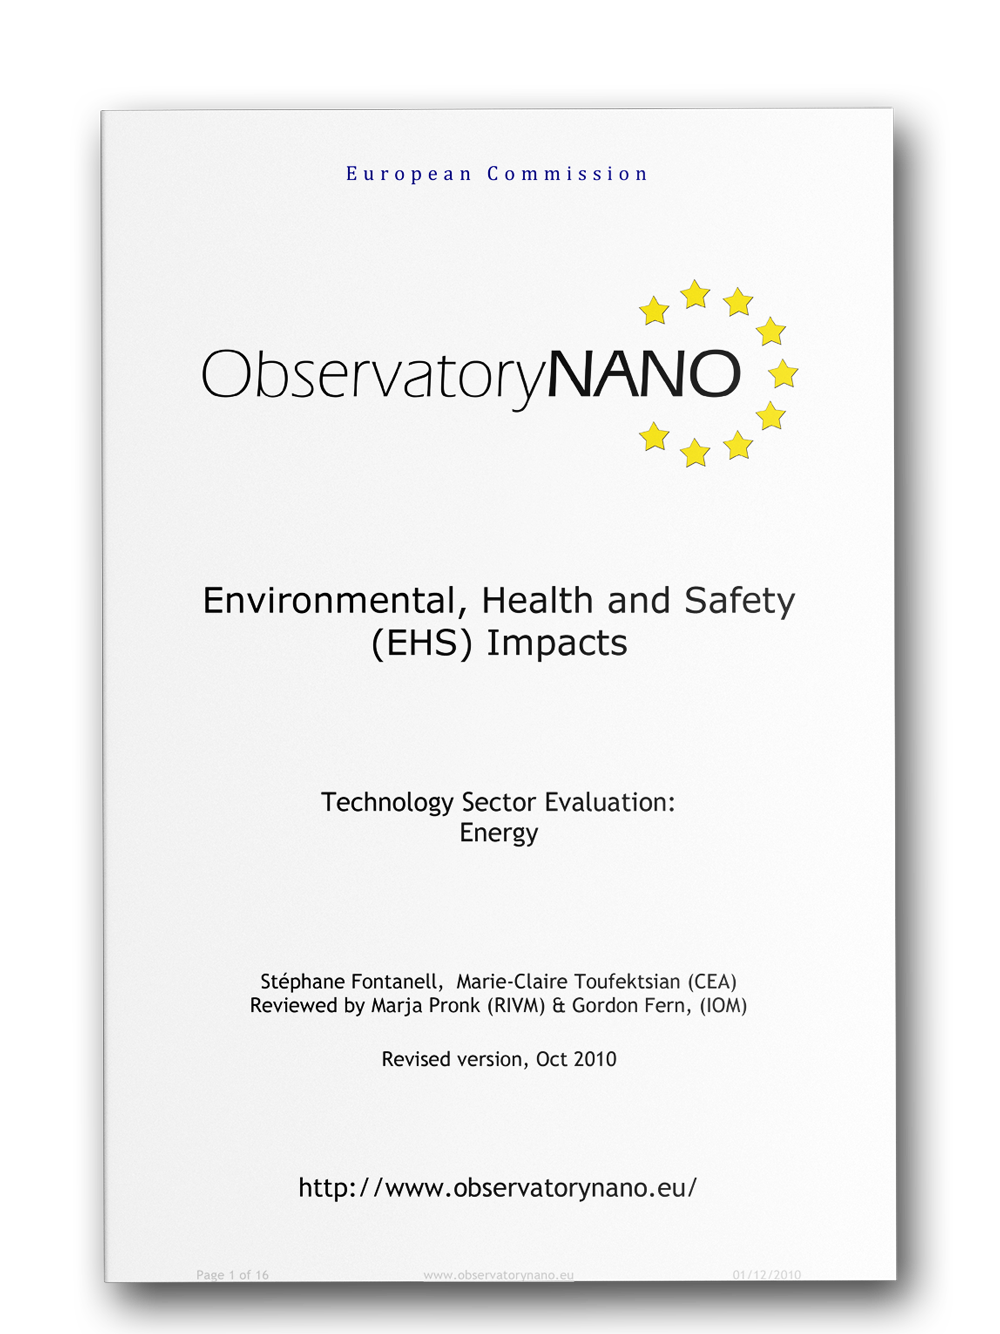 image: Environmental, Health and Safety (EHS) Impacts | Technology Sector Evaluation: Energy by ObservatoryNano